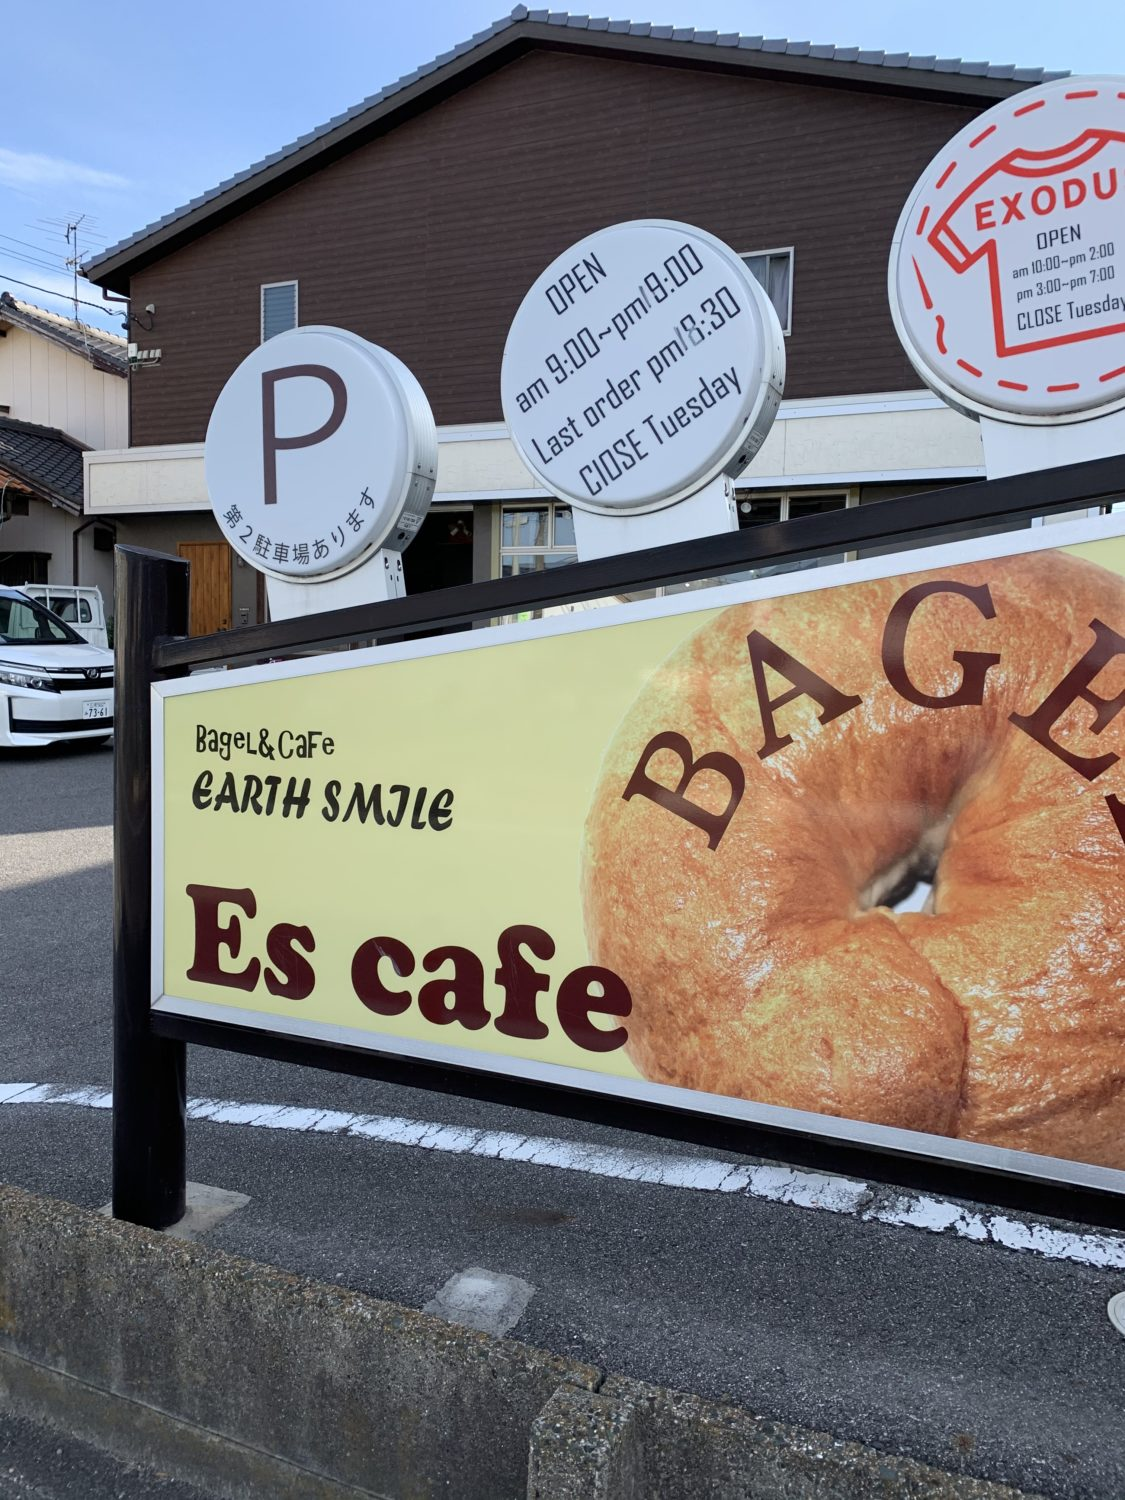 Earth Smile cafe  ES cafe